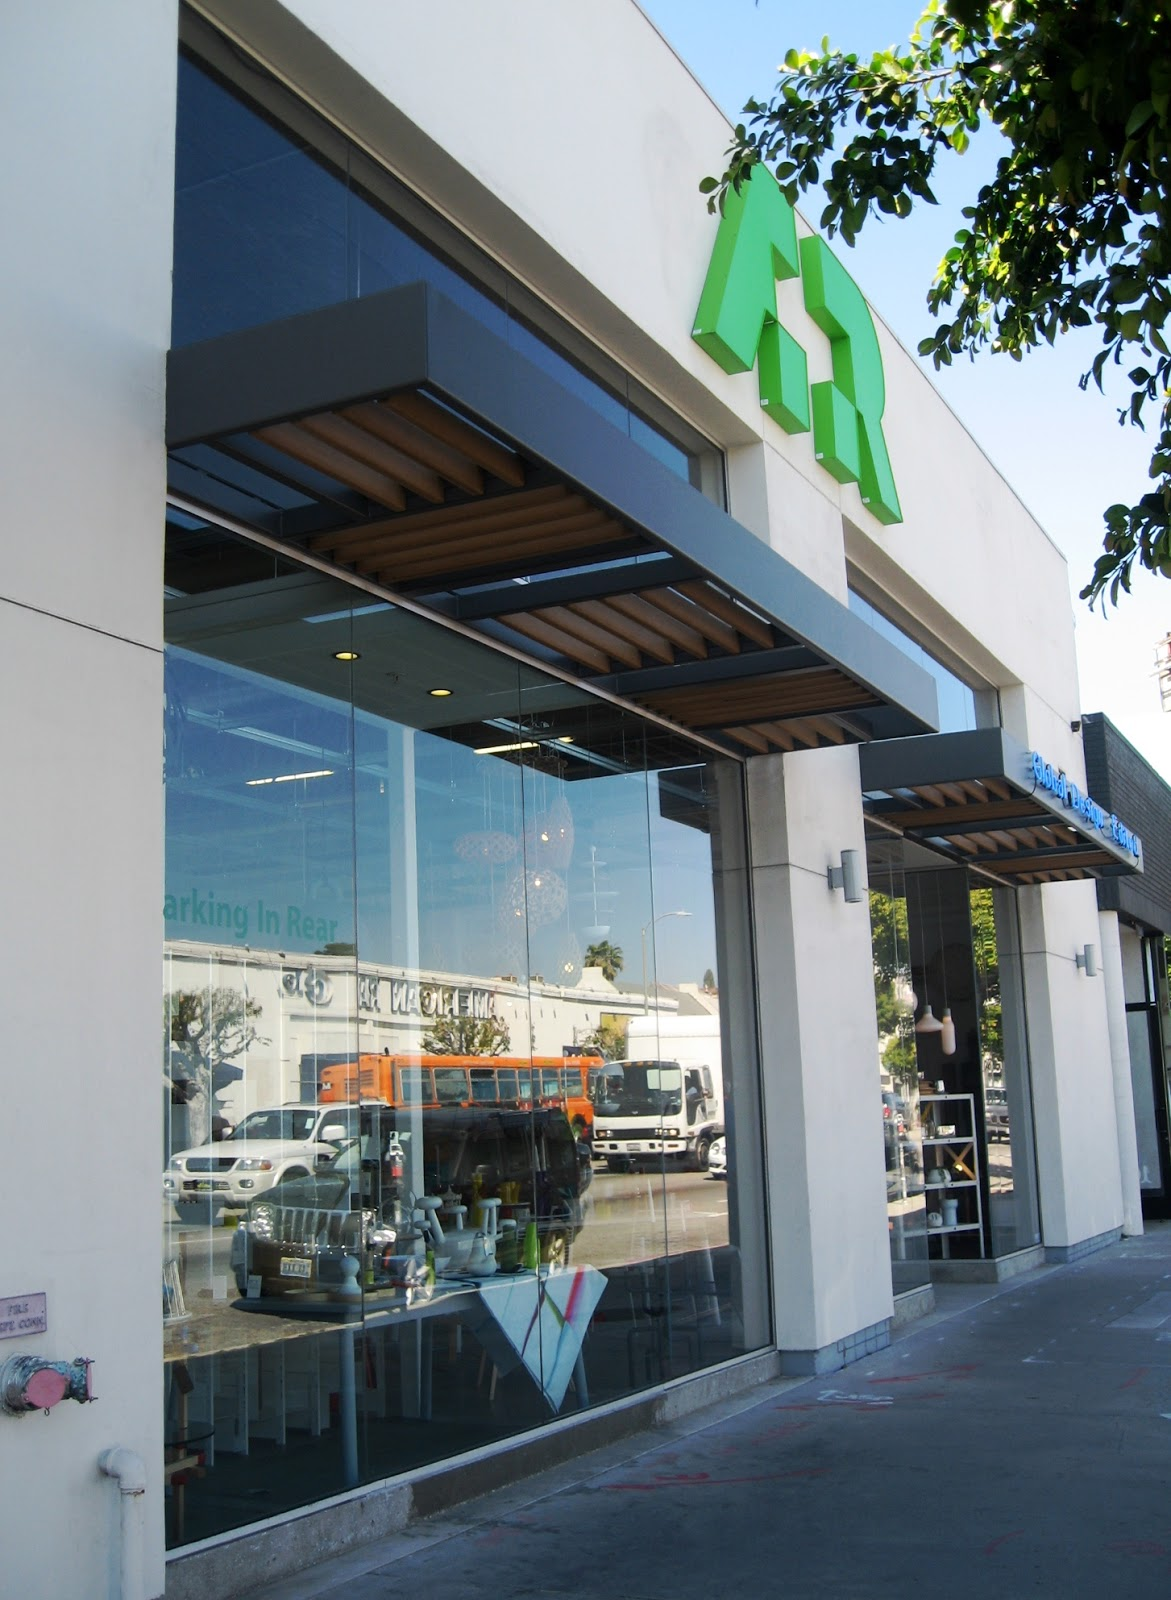 According to BRASWELL: Walking on La Brea Ave.- New Shops and Old